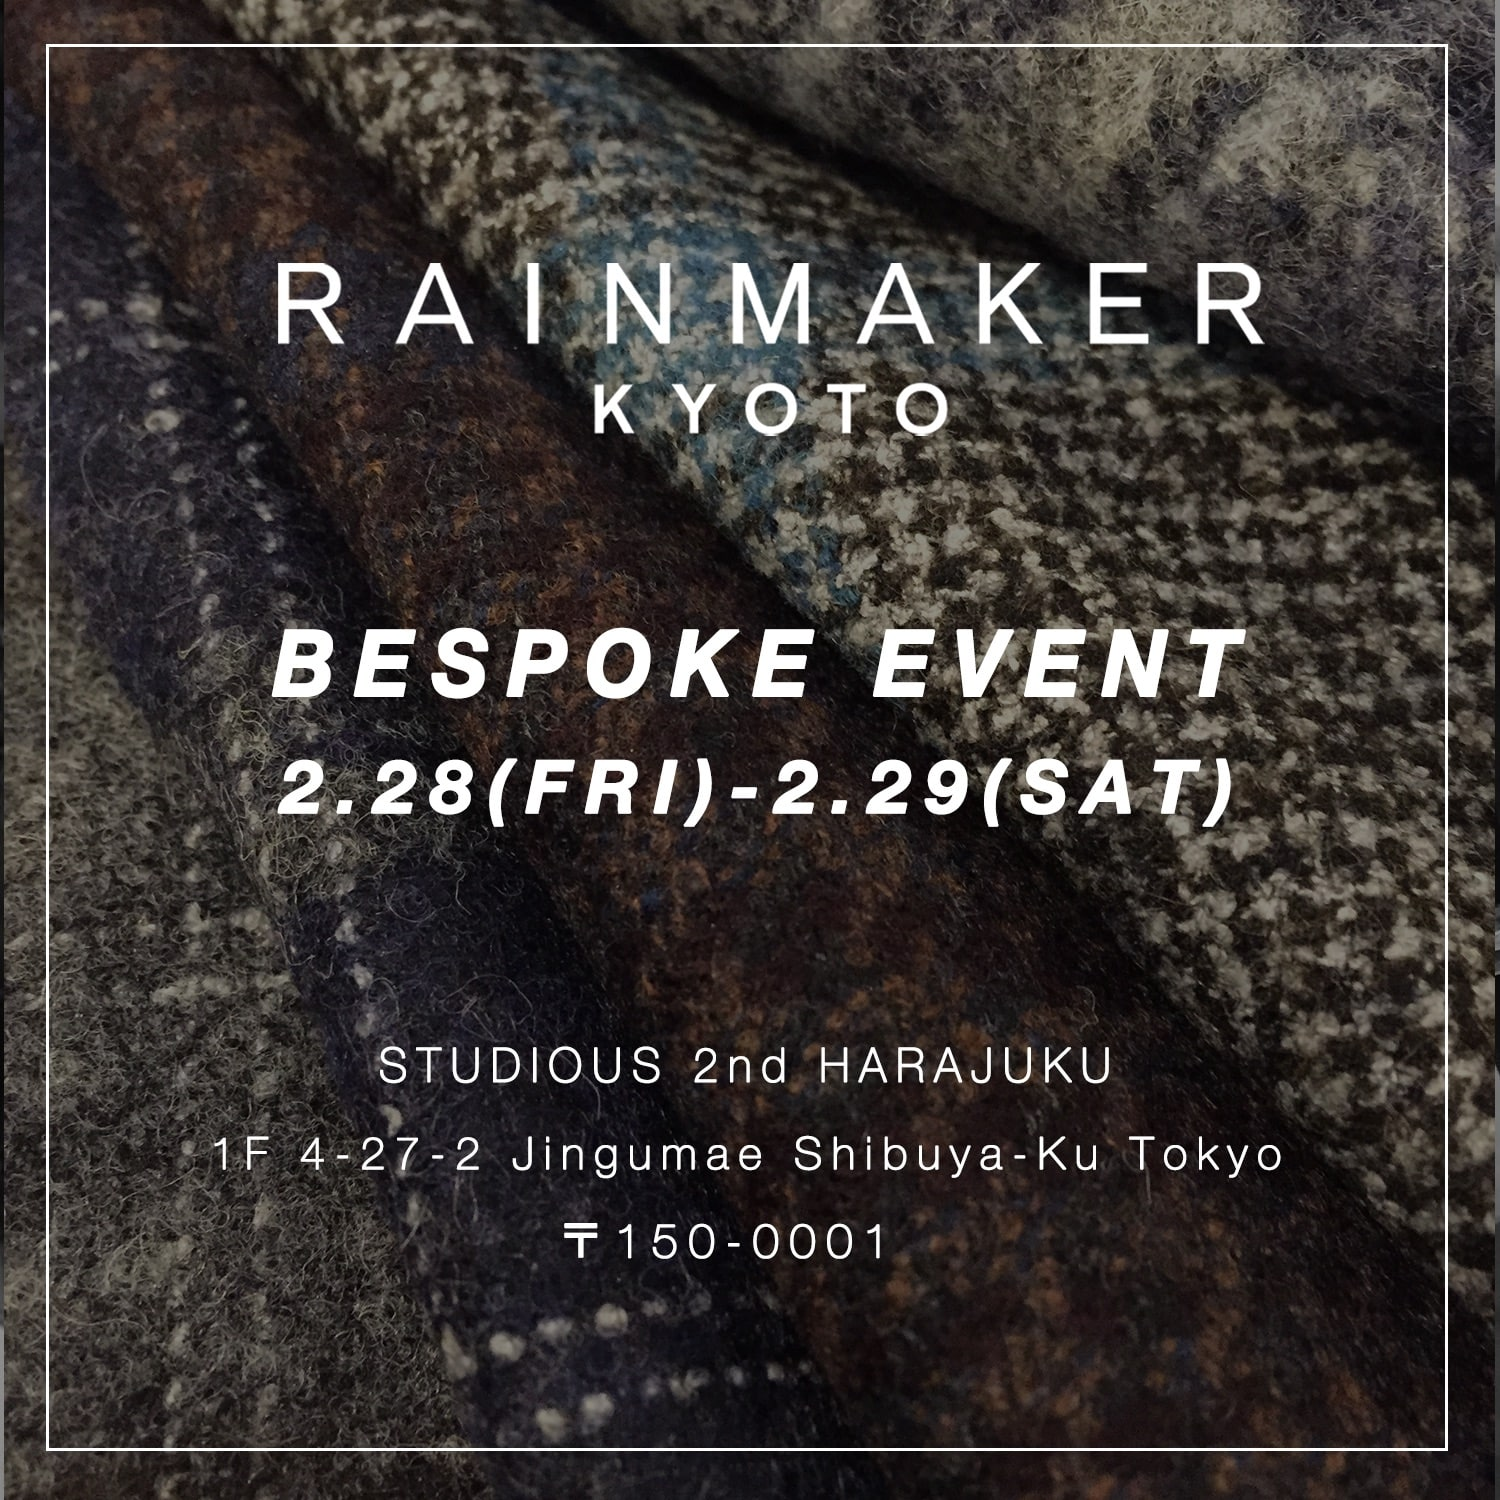 RAINMAKER ORDER SUITS EVENT